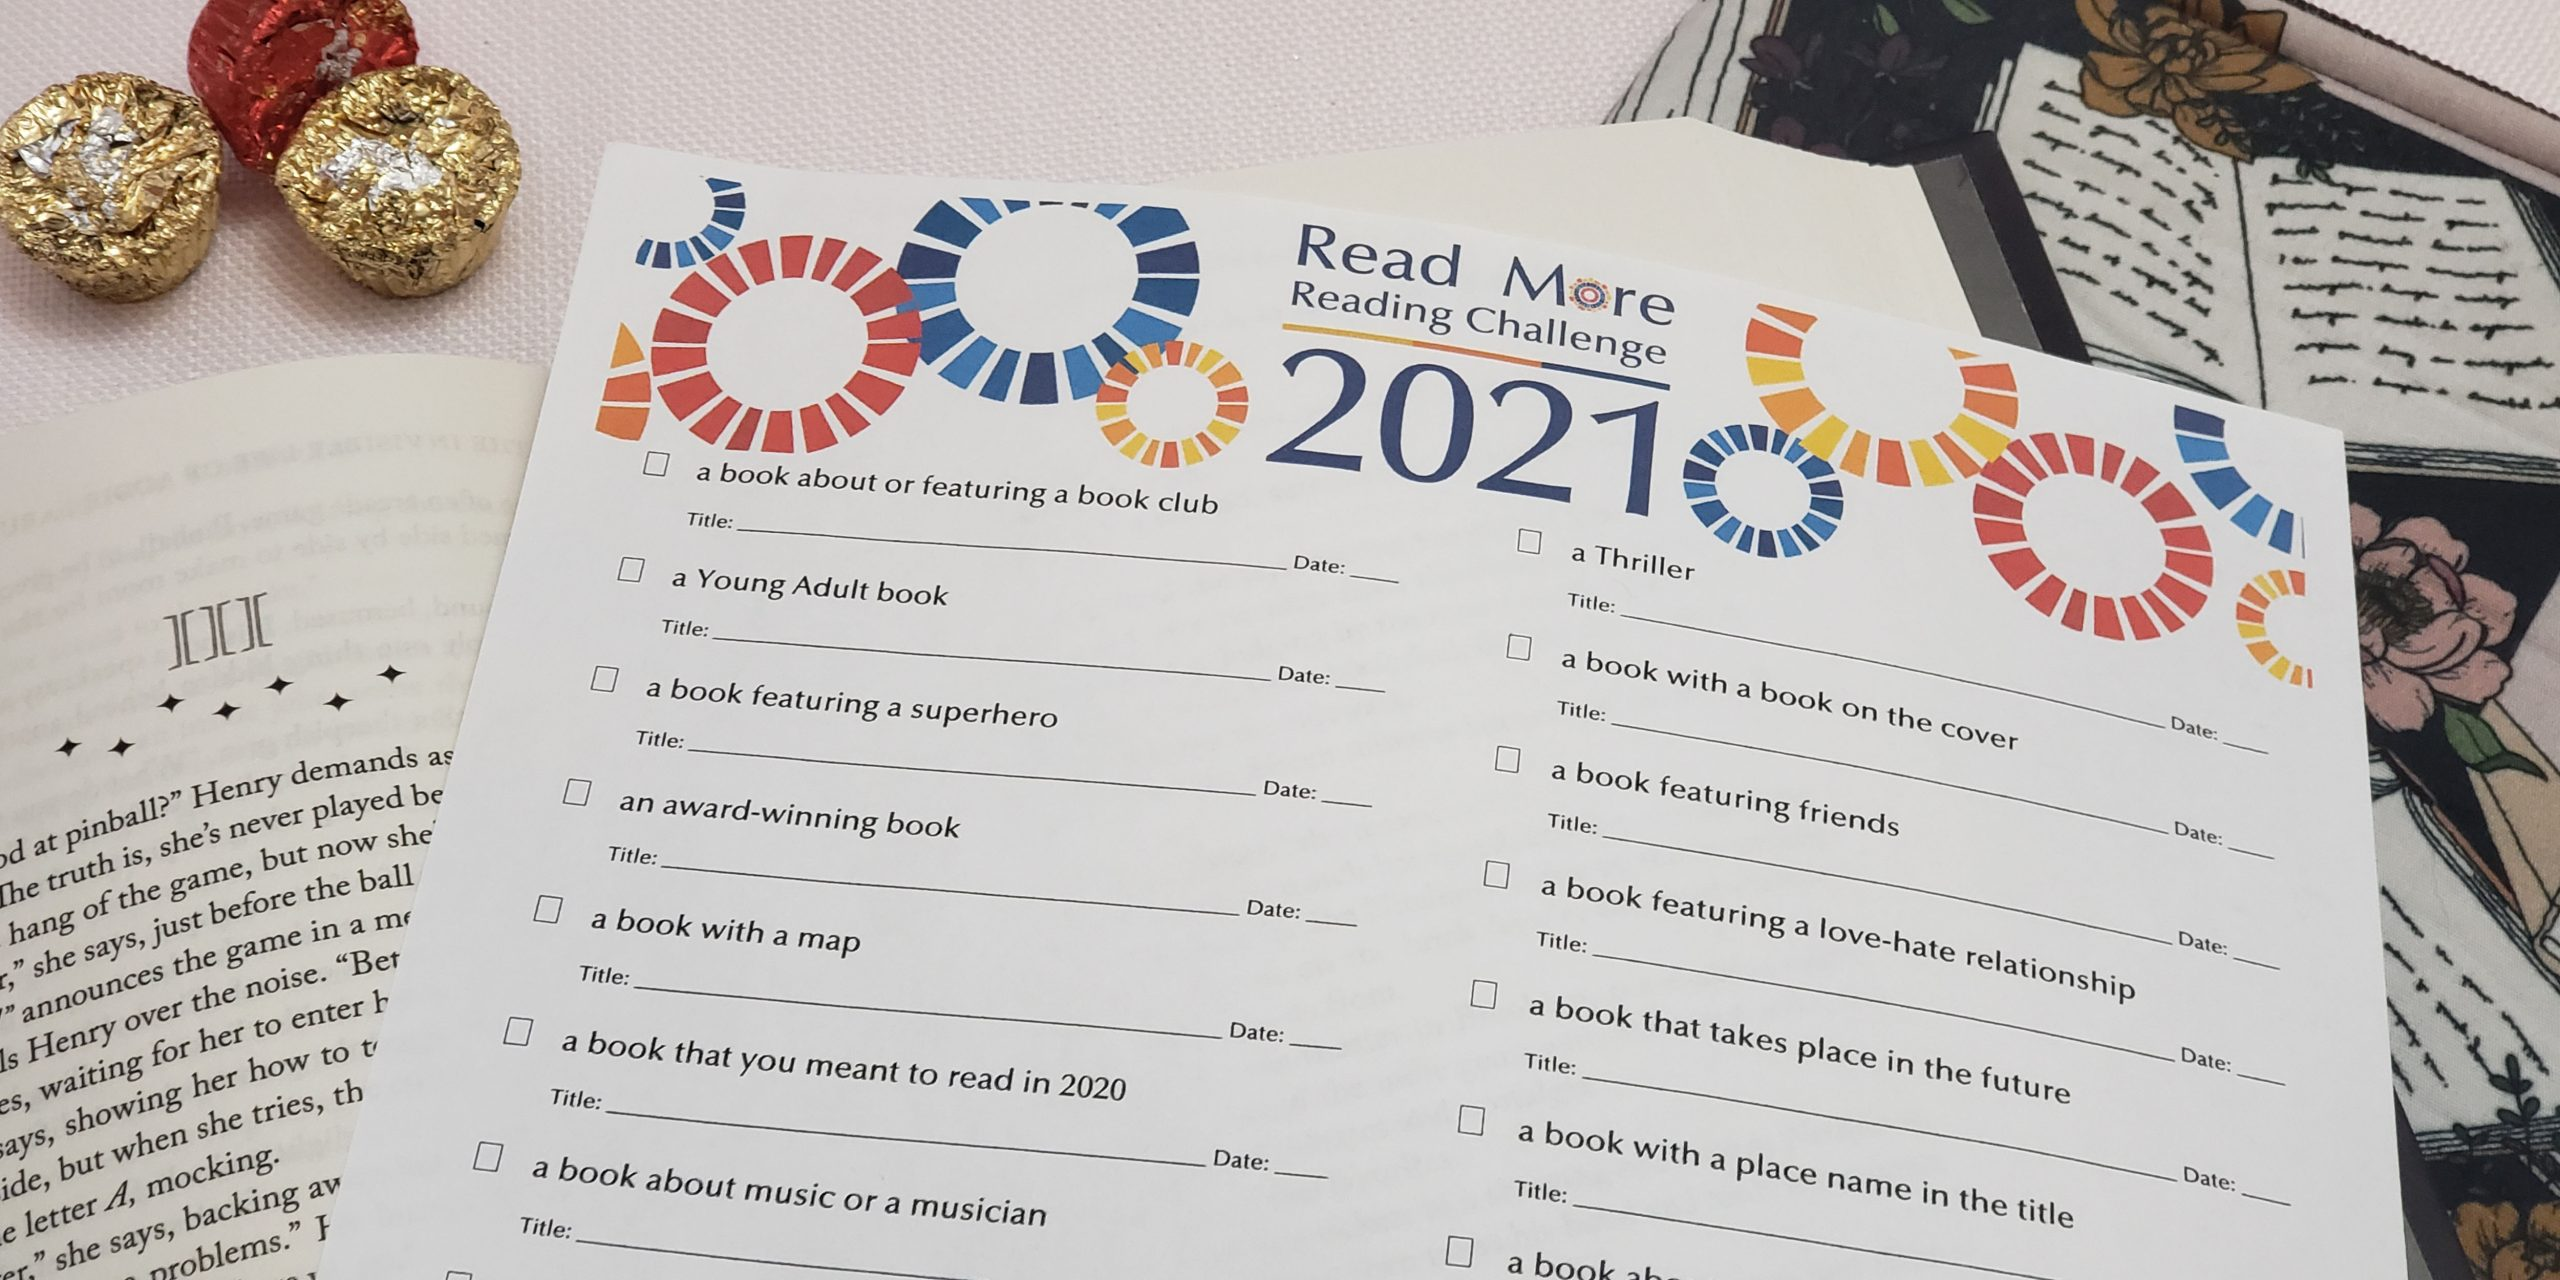 Read More! 2021 Reading Challenge